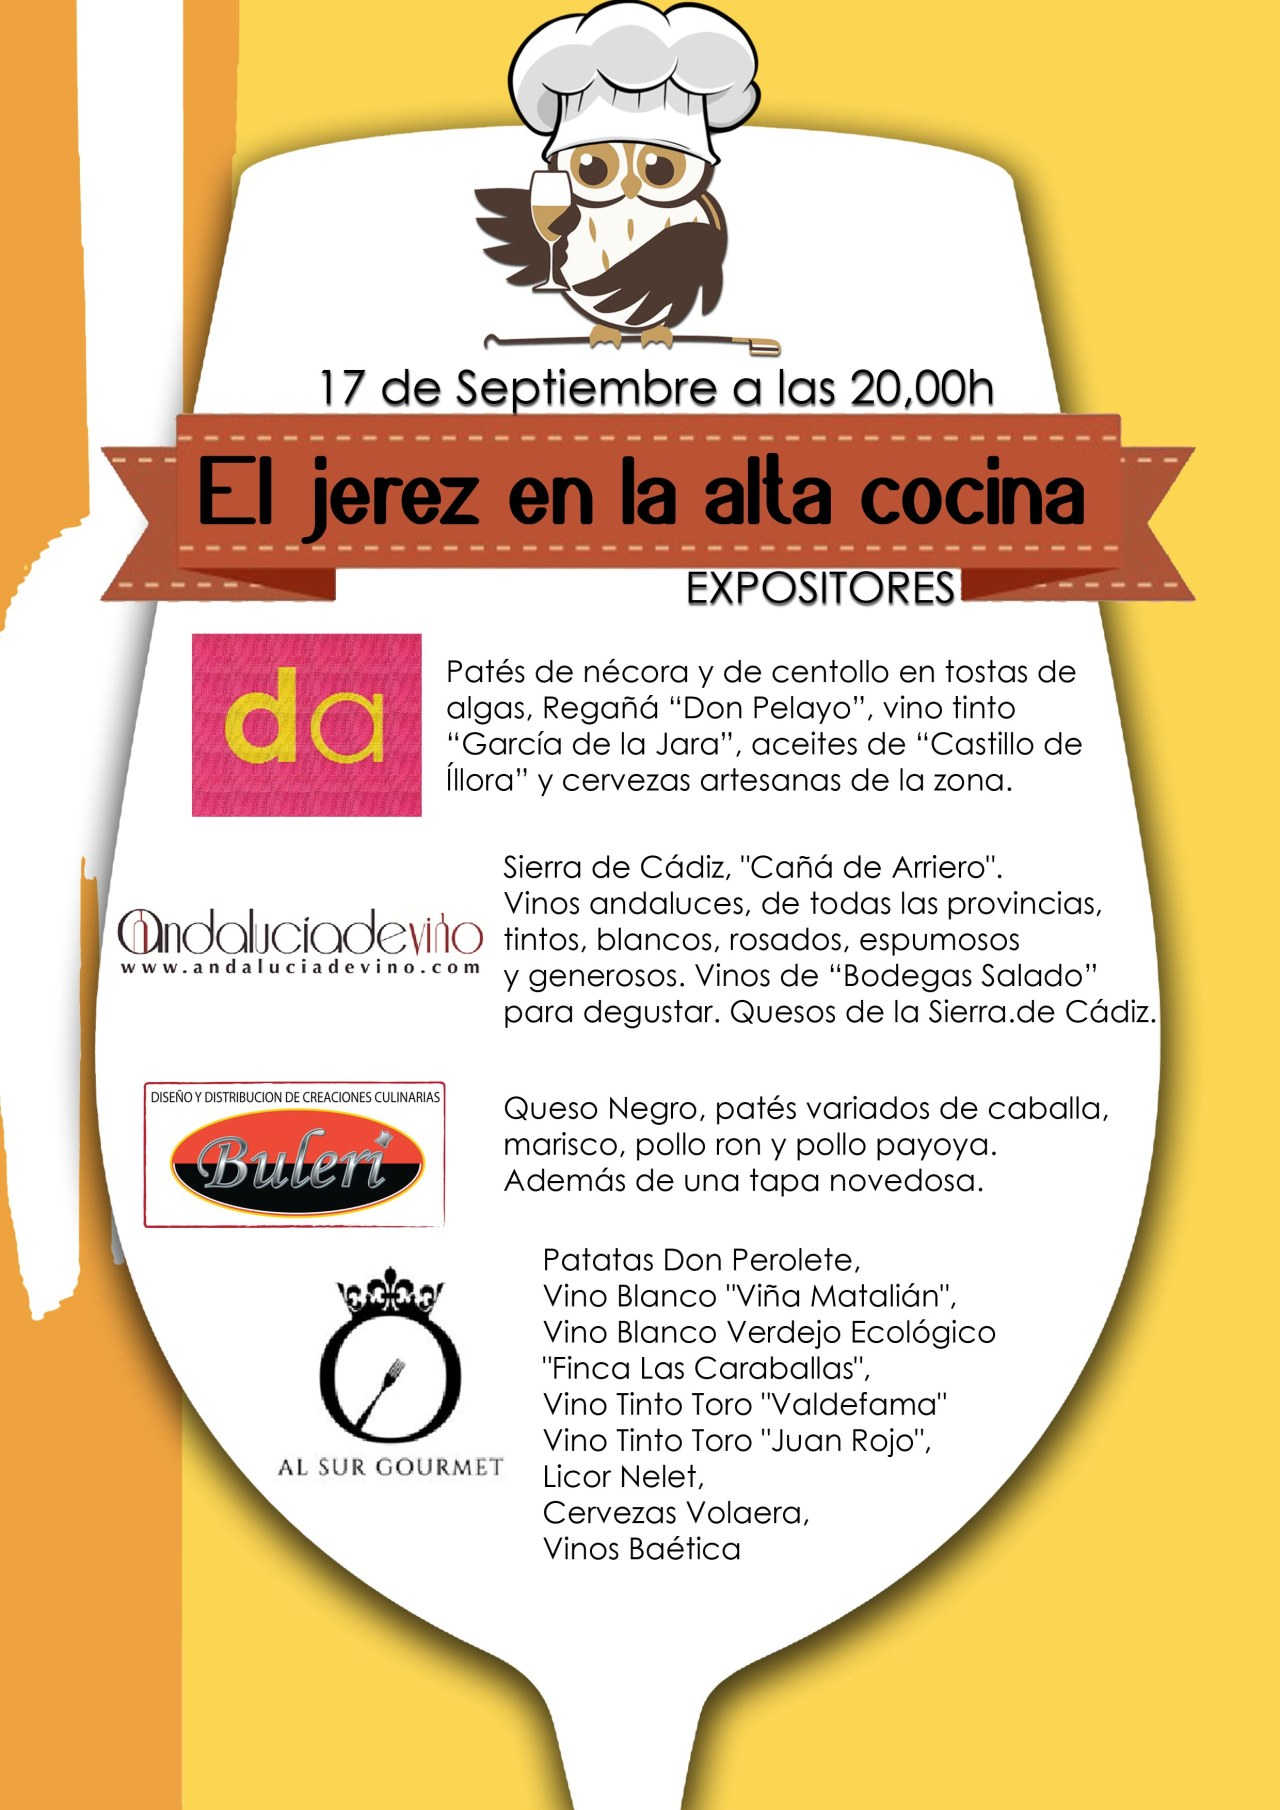 Invitados y sus productos gourmet Jueves, 17 de septiembre.  Guests and their gourmet products next Thursday, September 17th.